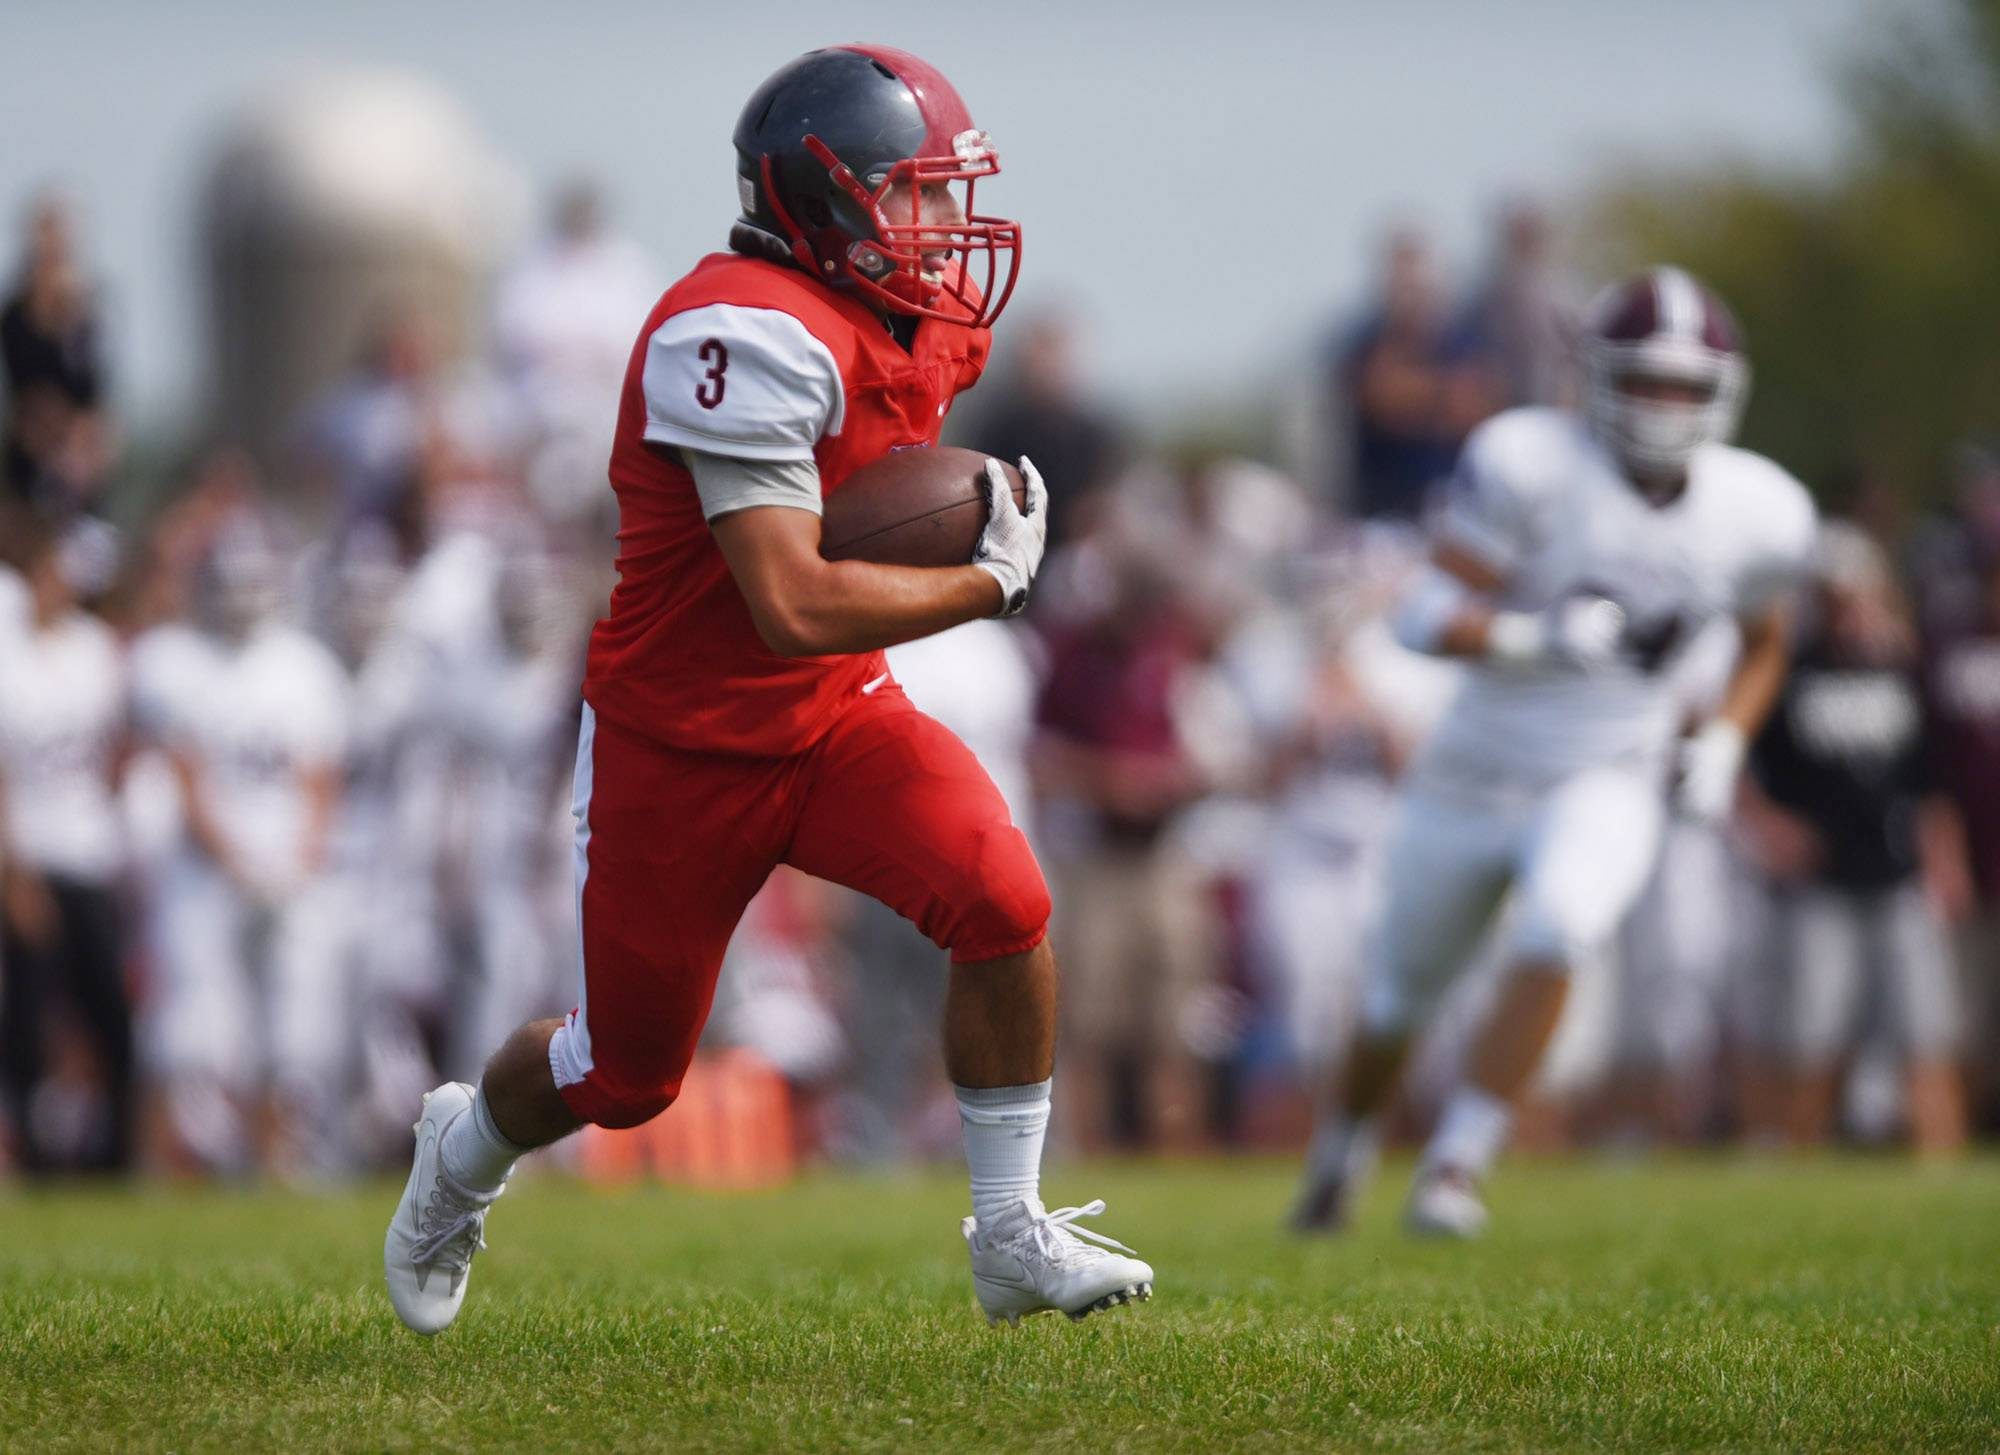 South Elgin's Joey Cipriani makes a large gain against Lockport Saturday in South Elgin.